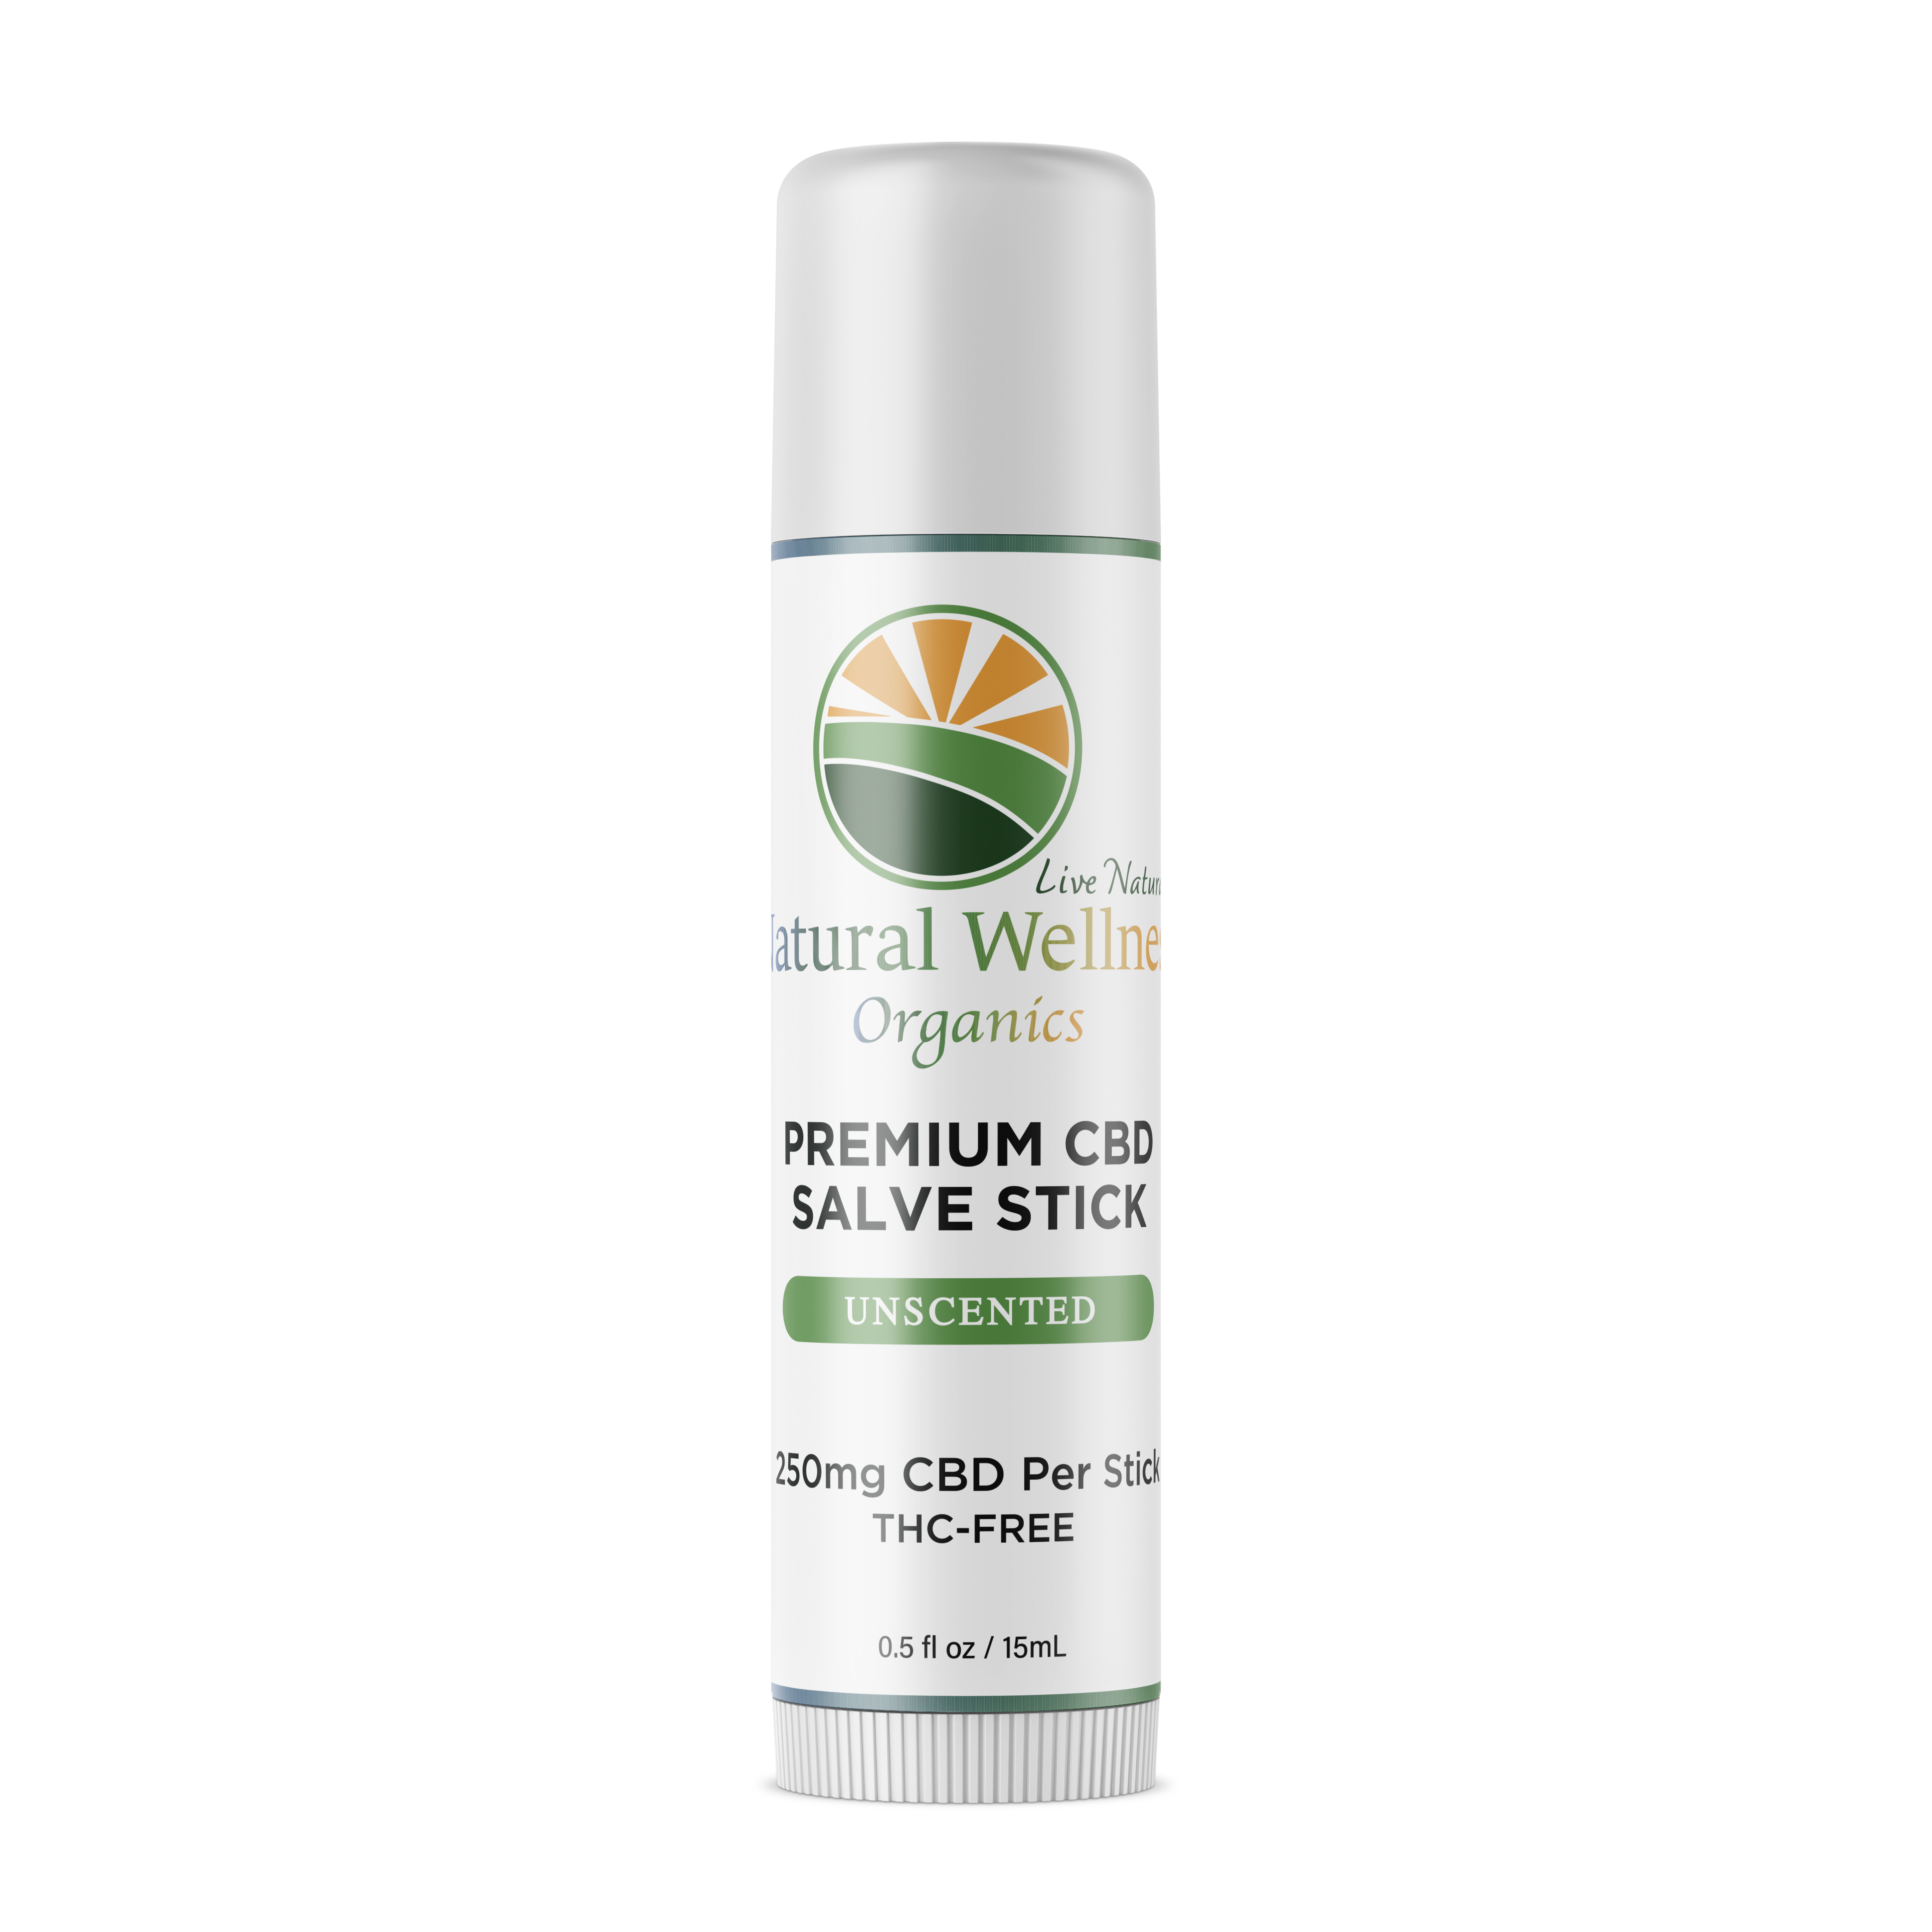 Natural Wellness Organics CBD Salve Stick